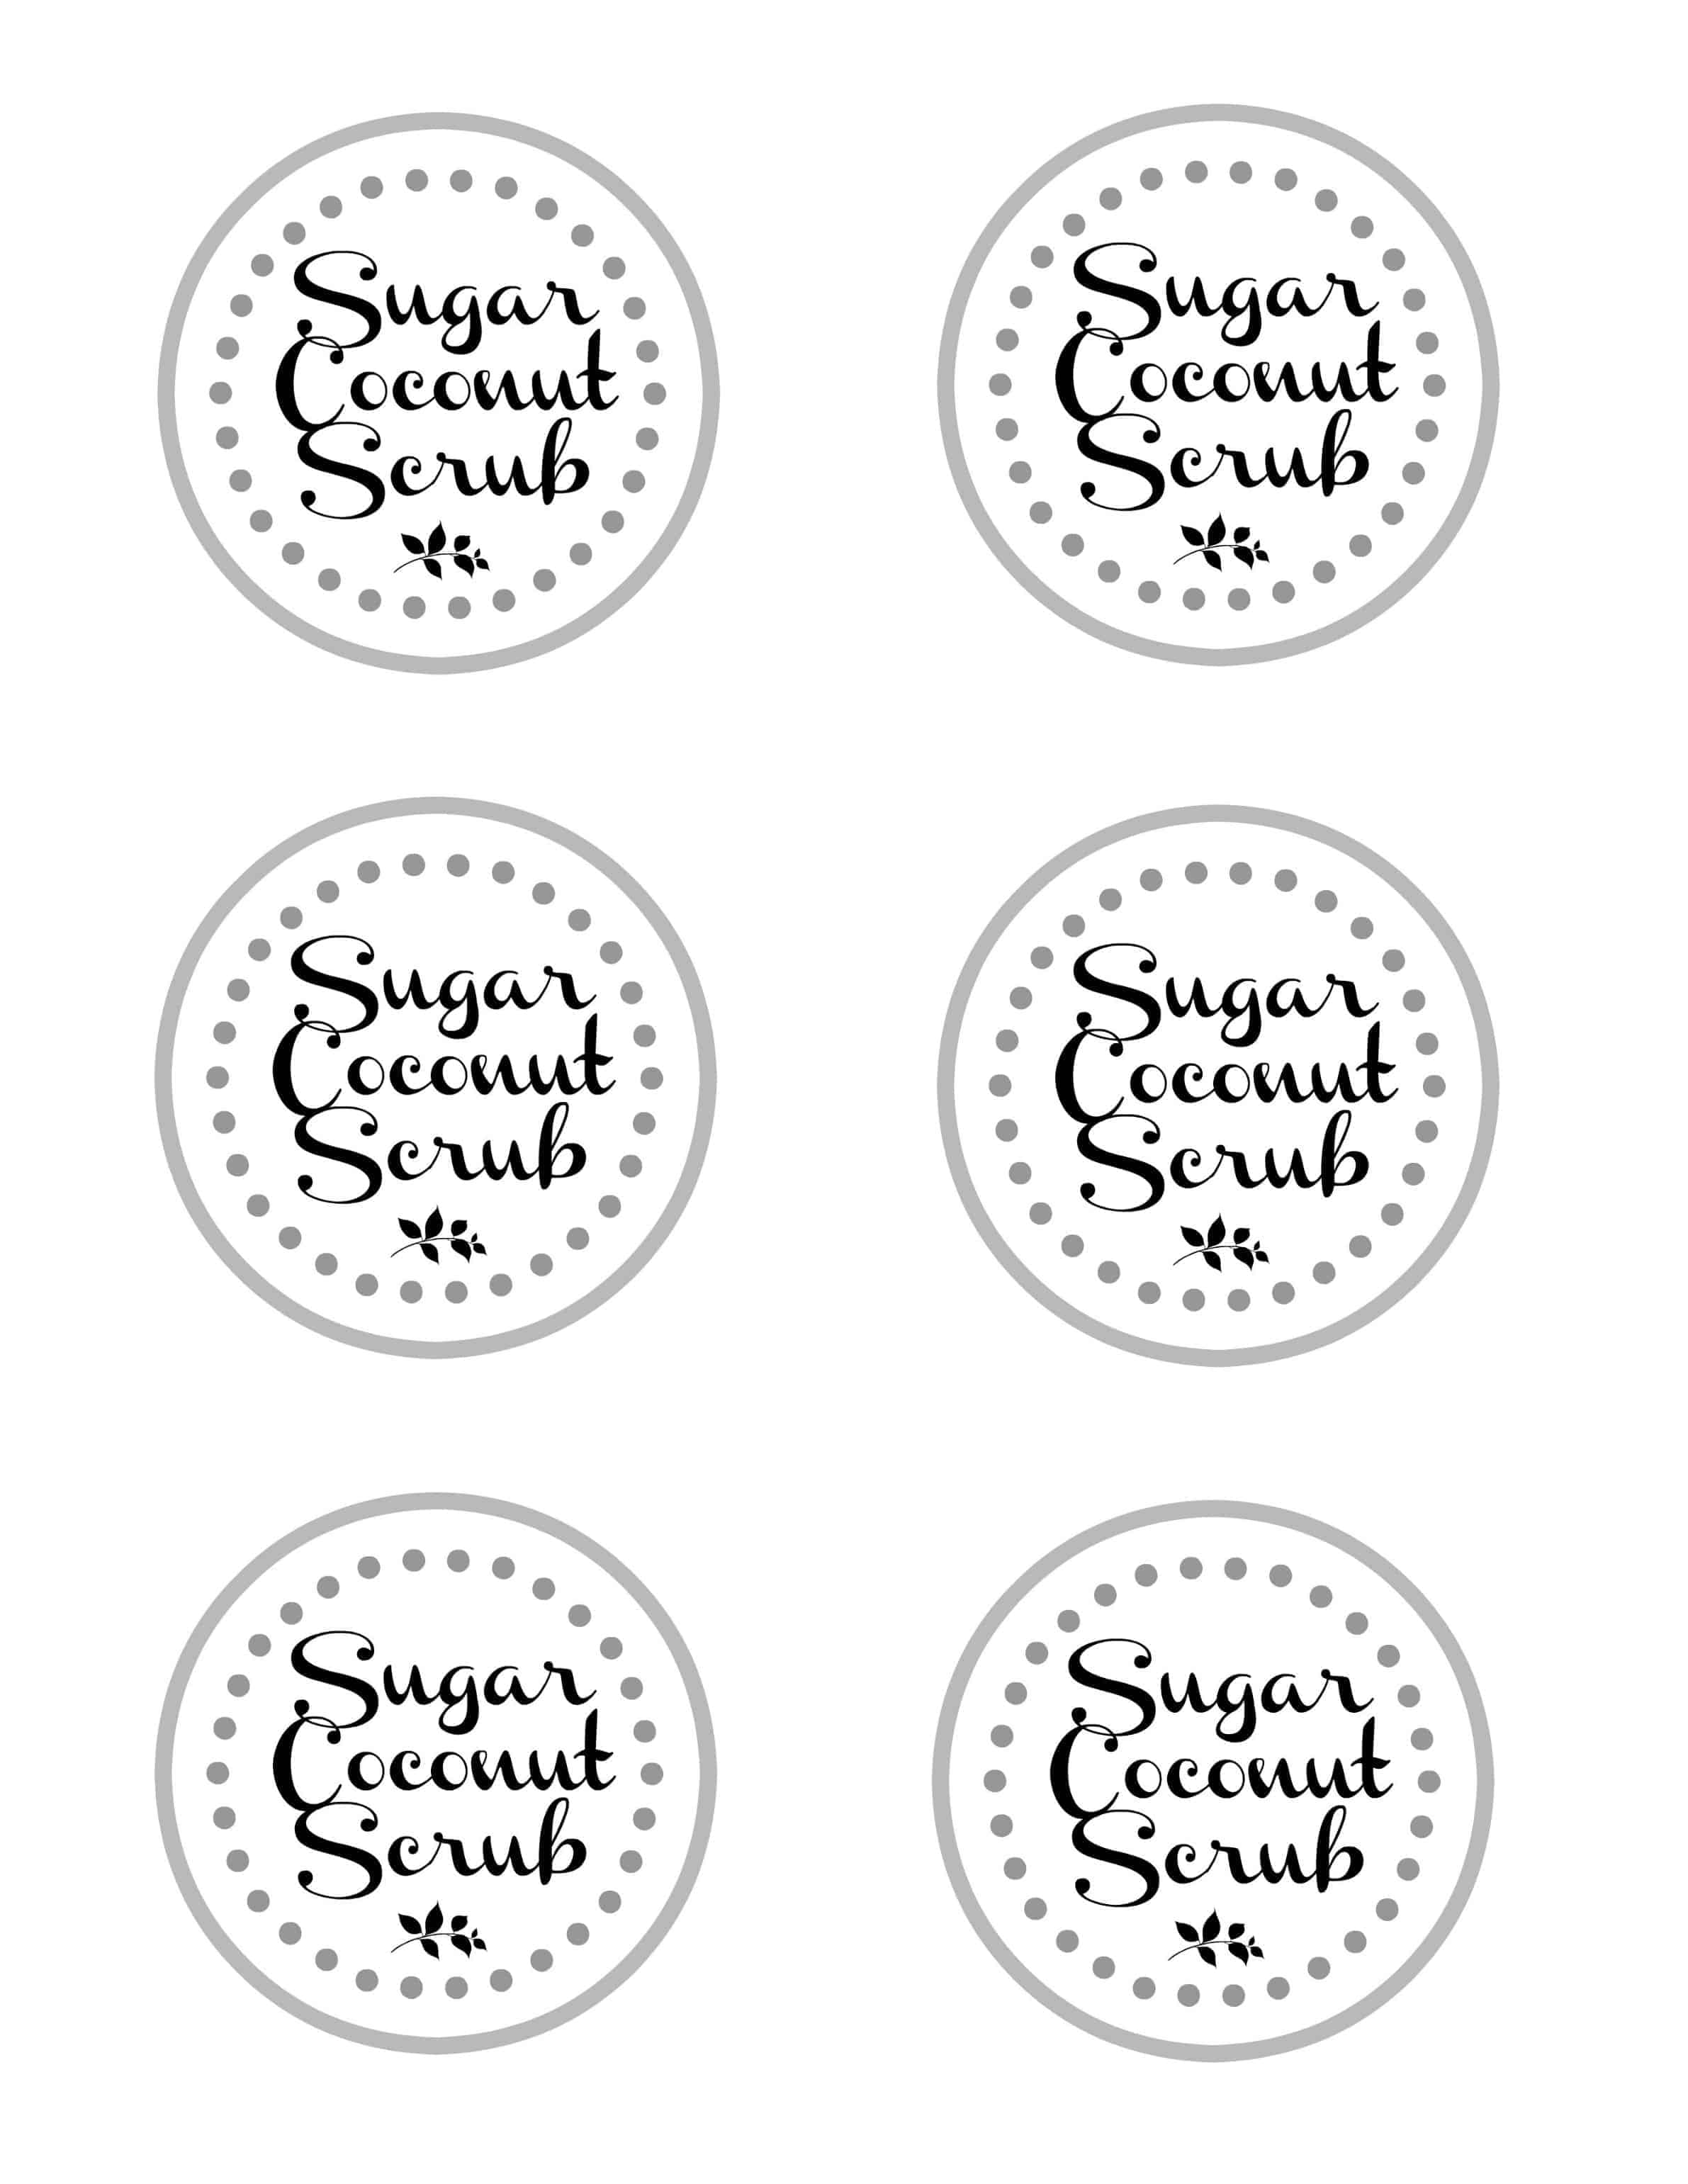 Tactueux image intended for printable sugar scrub labels